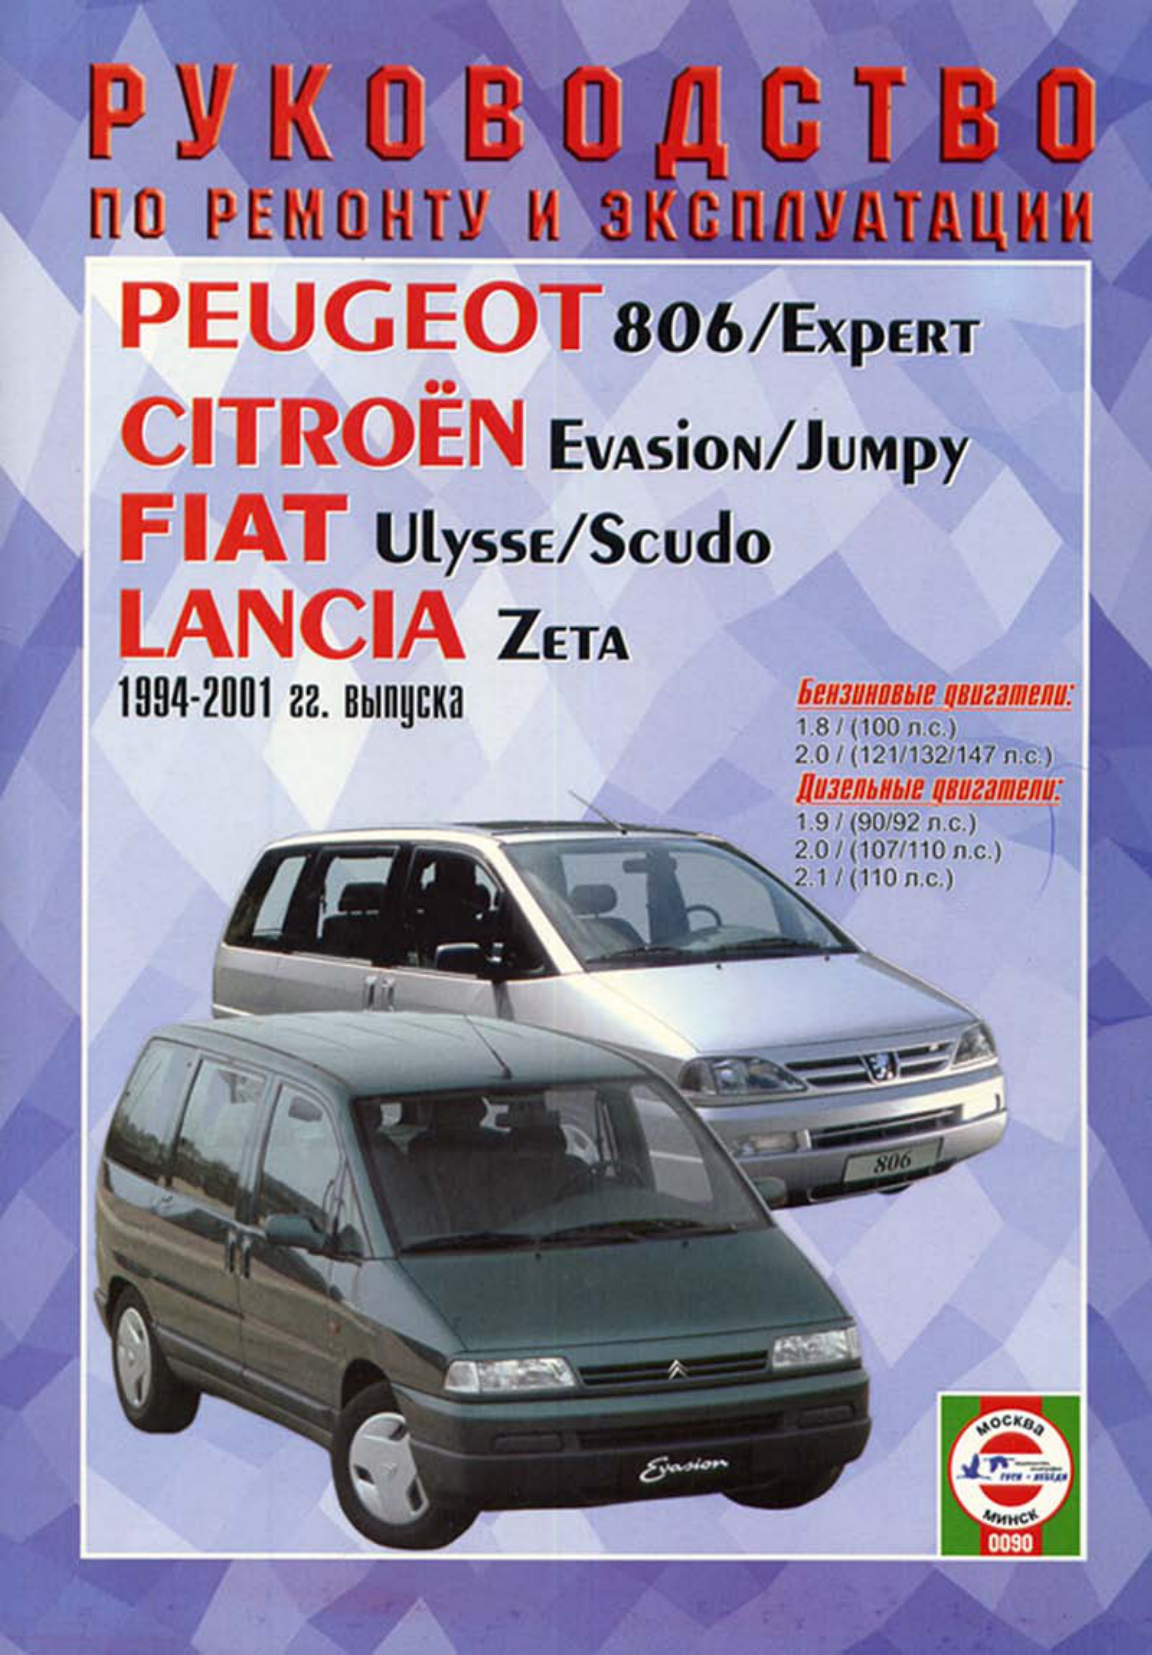 See our other Fiat Ulysse Manuals: